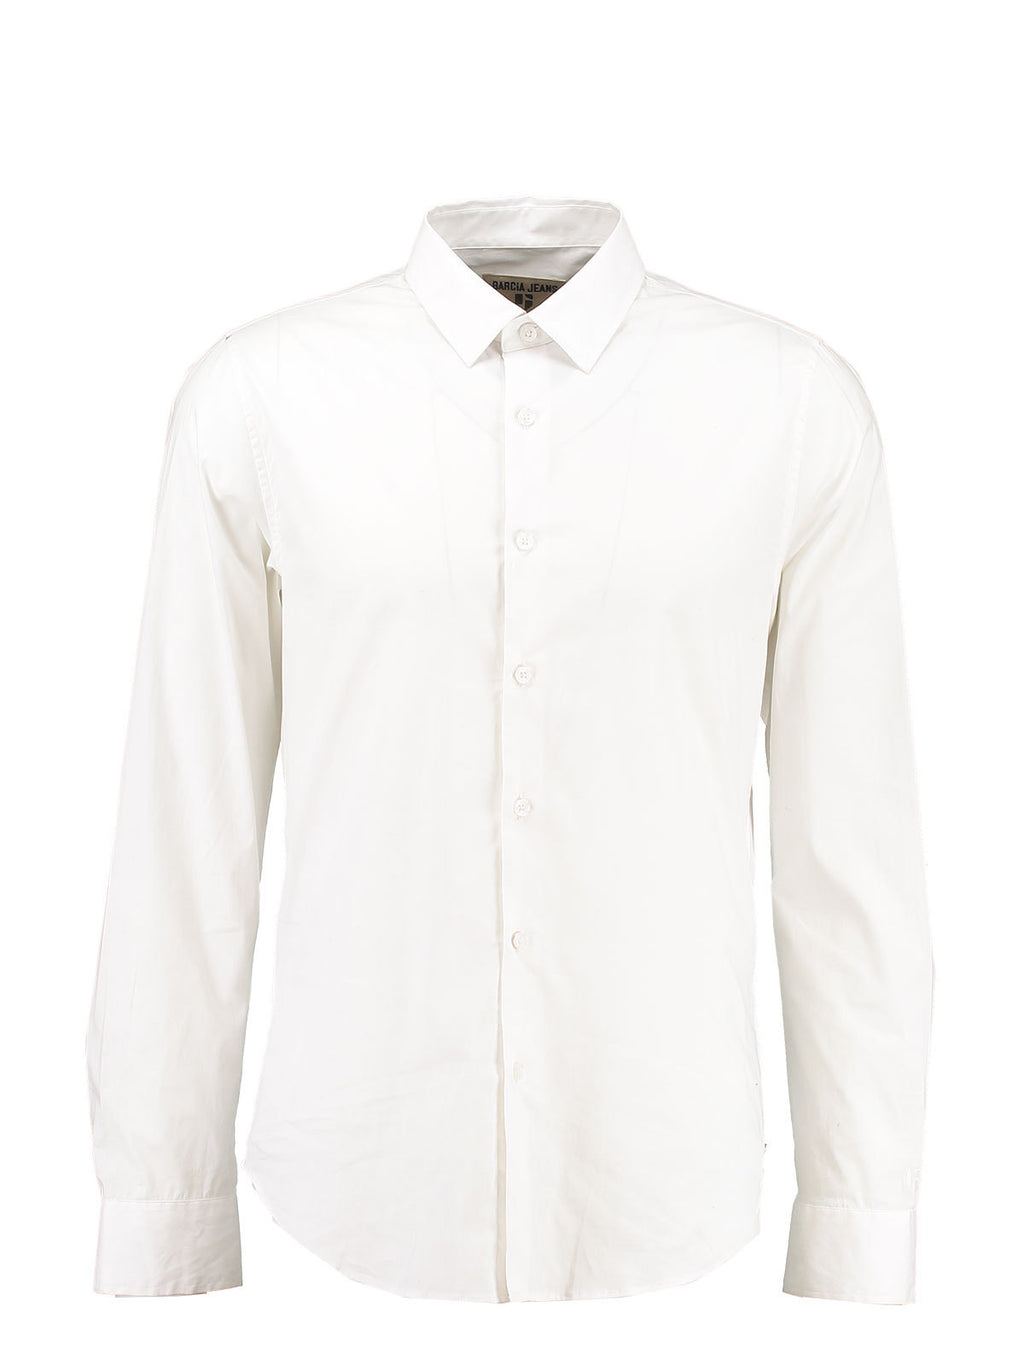 Garcia Men's Long Sleeve White Shirt - REDUCED!